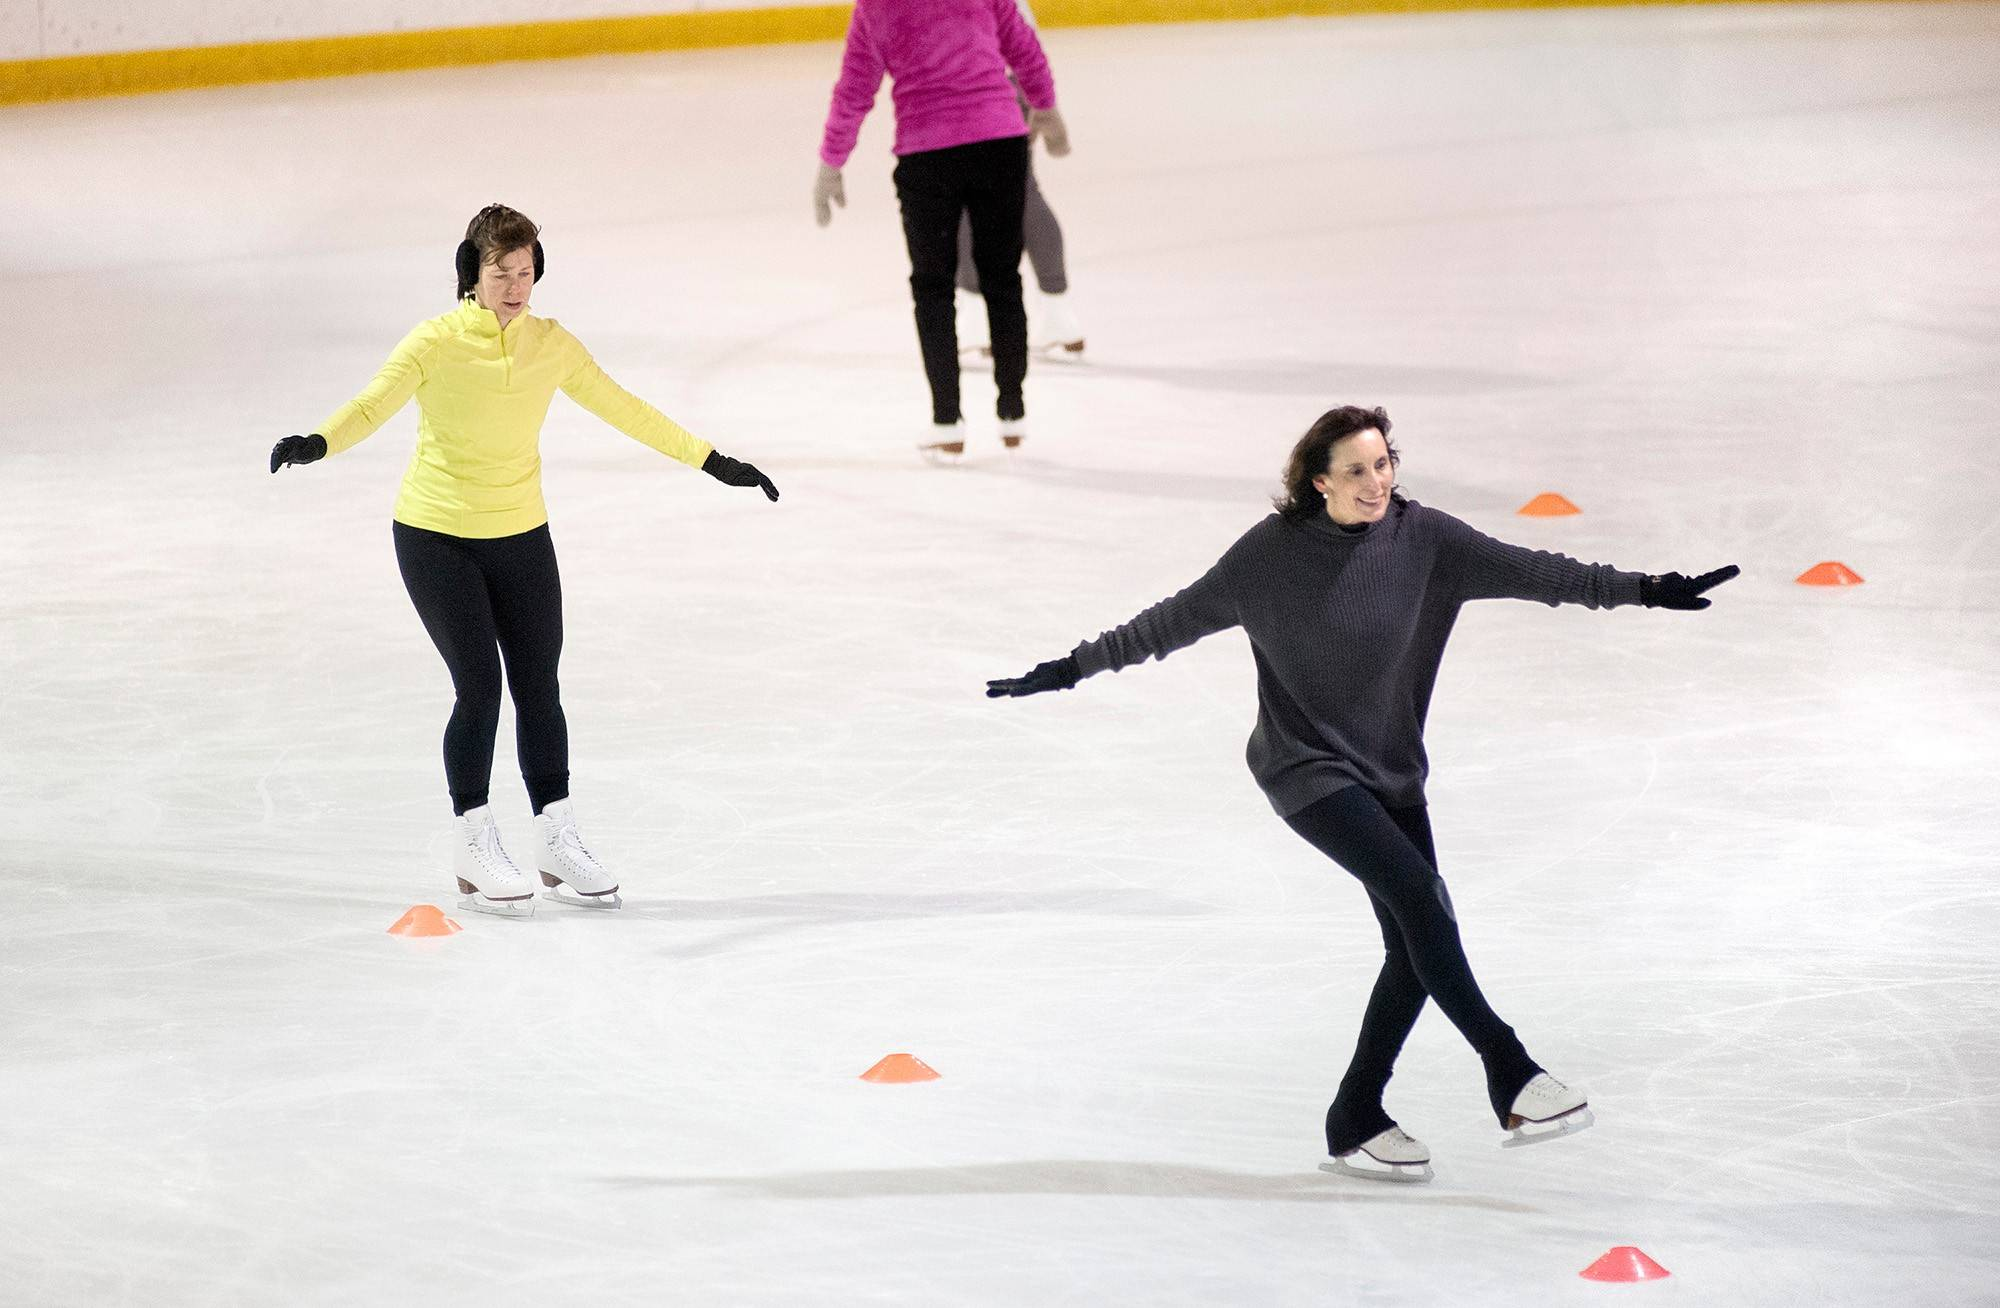 Jeanne Erdmann, right, participates in an ice skating aerobics class at the Hardeeís Iceplex in Chesterfield, Mo.